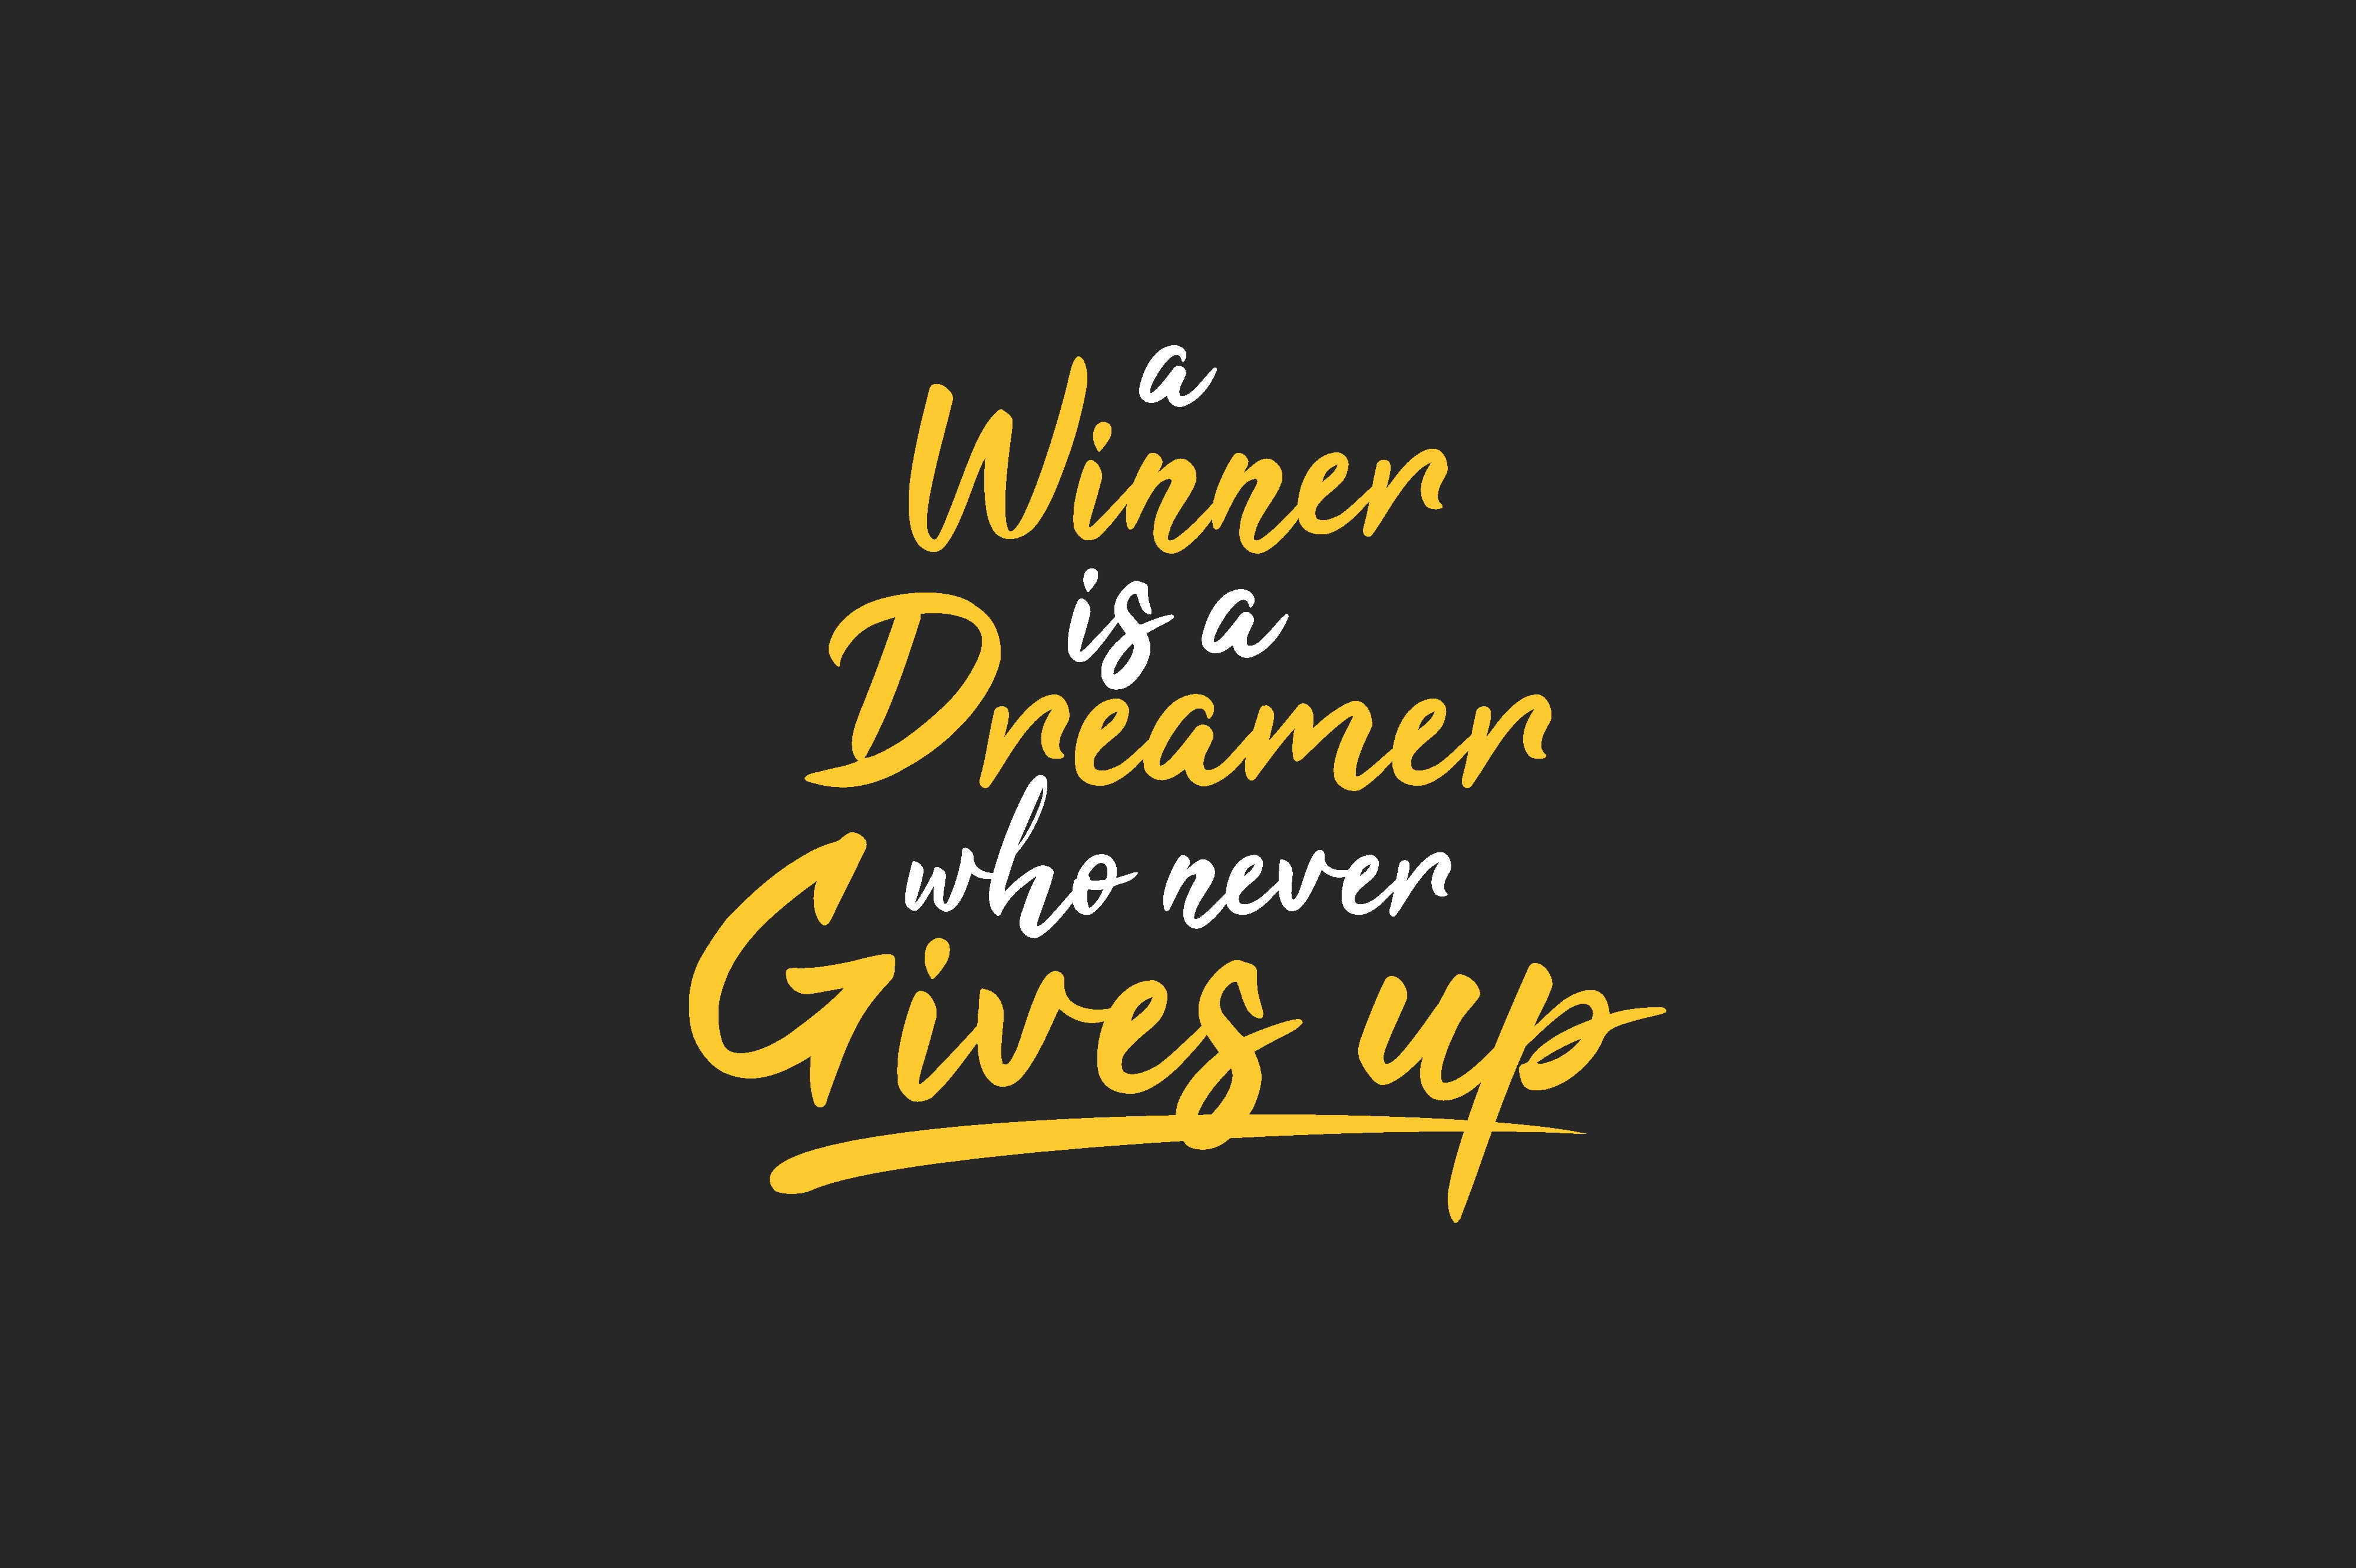 Download Free A Winner Is A Dreamer Who Never Gives Up Graphic By Chairul Ma Arif Creative Fabrica for Cricut Explore, Silhouette and other cutting machines.